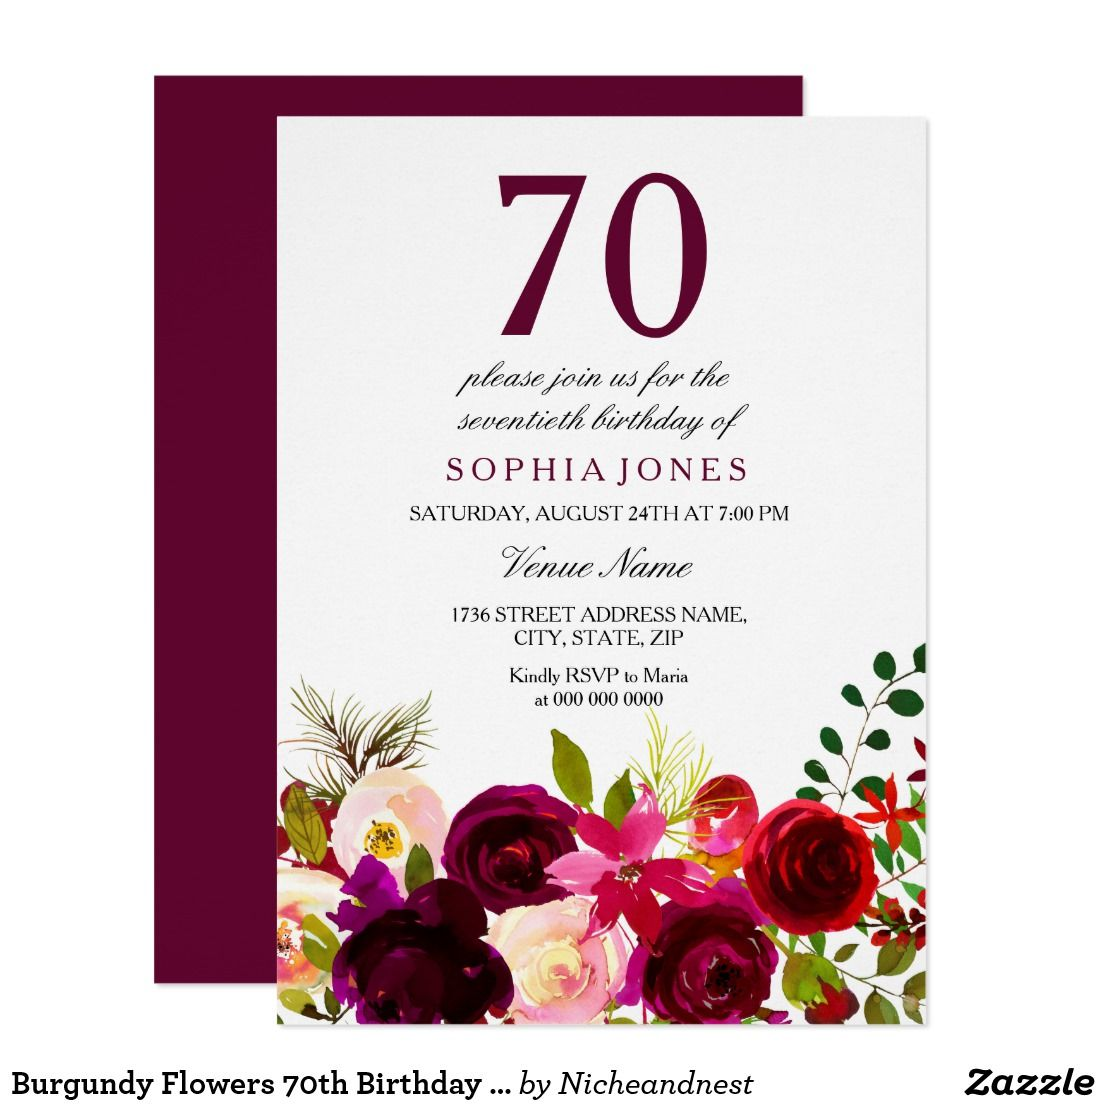 Burgundy flowers 70th birthday party invitation happy birthday burgundy flowers 70th birthday party invitation burgundy flowers 70th birthday party invitation matching collection in niche and nest store izmirmasajfo